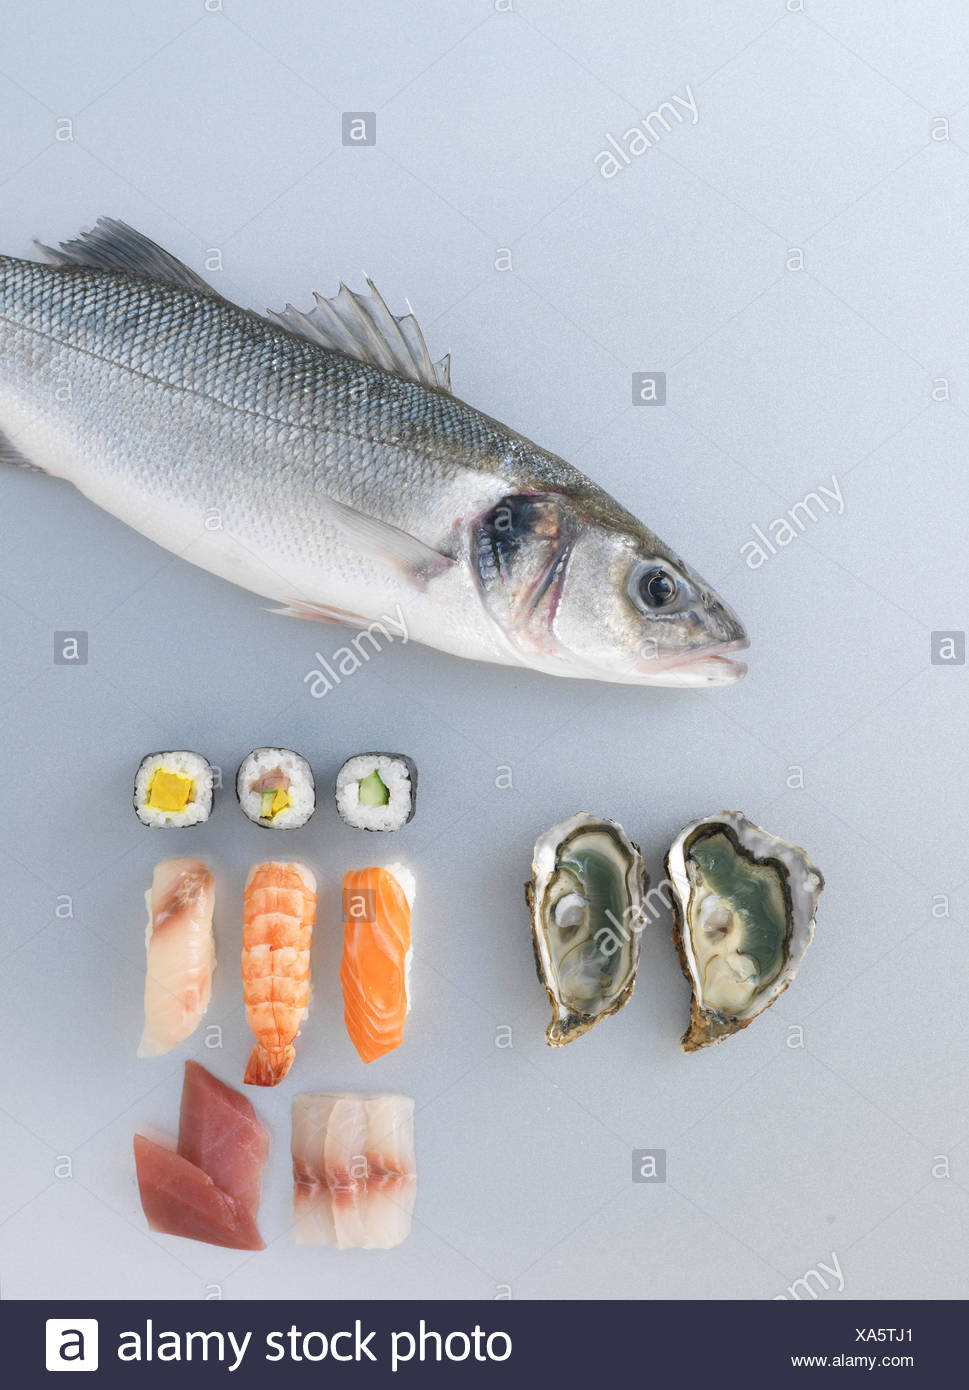 Fish composition - Stock Image